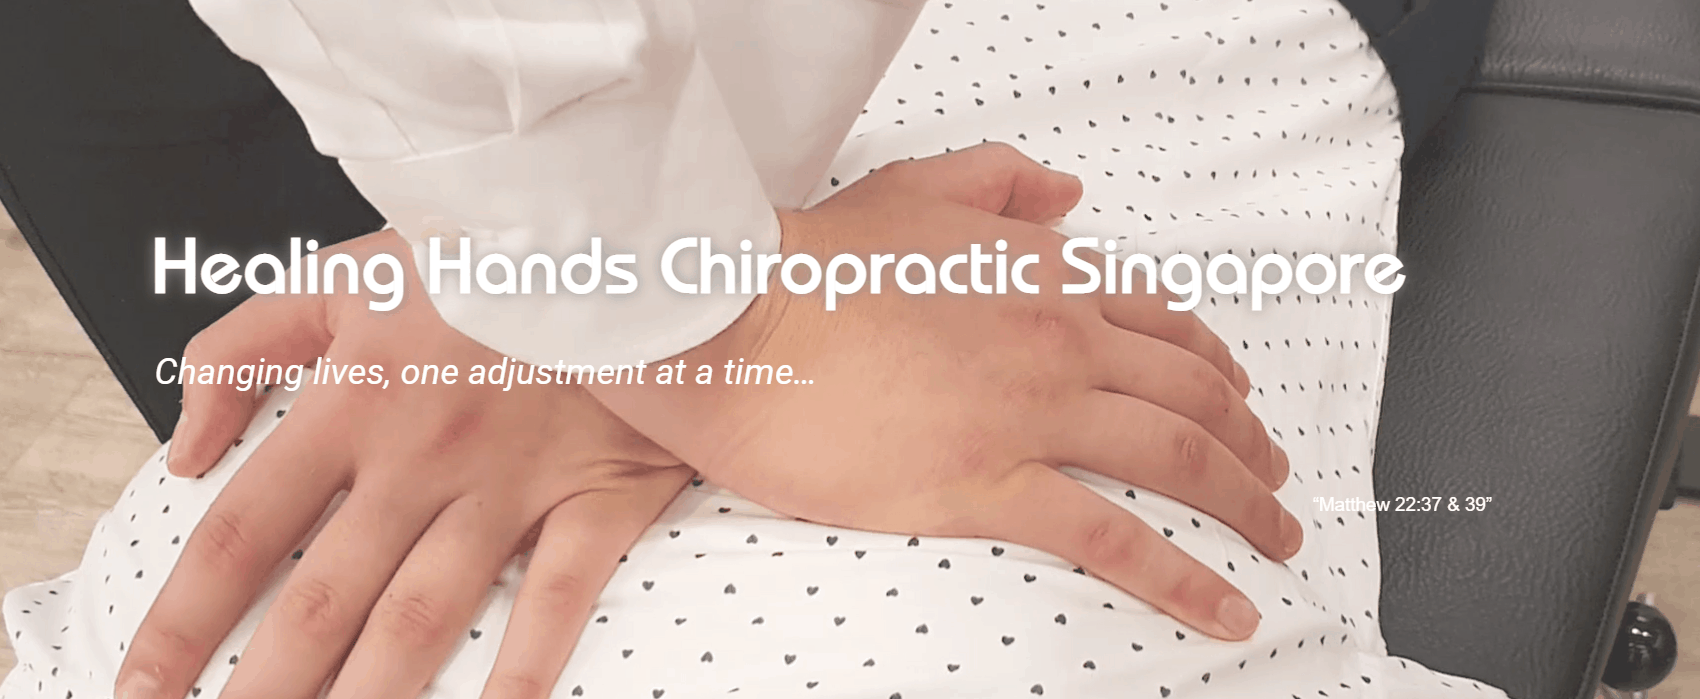 Healing Hands Chiropractic is top 10 Chiropractors In Singapore For Office Workers With Body aches